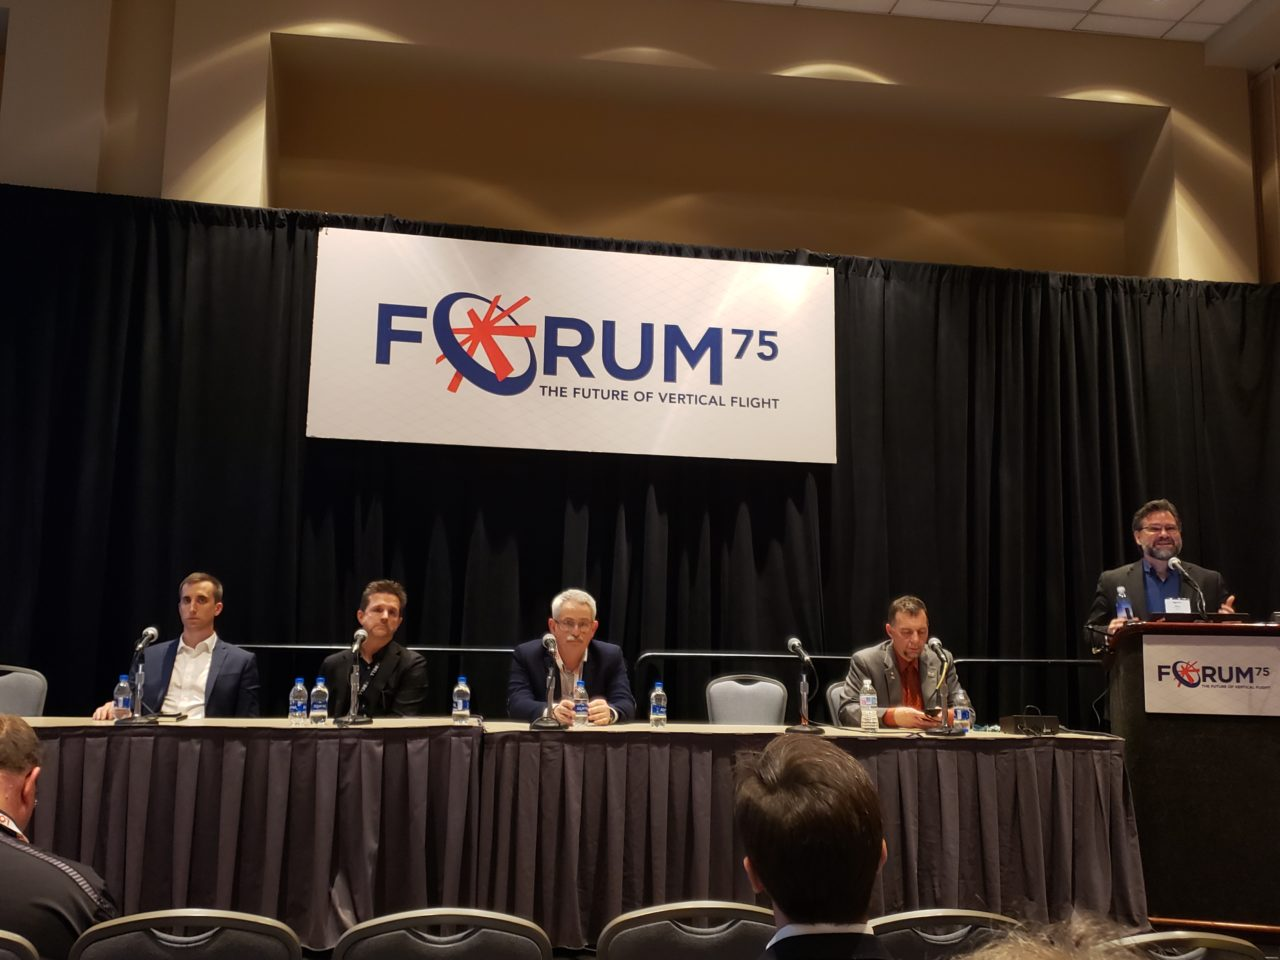 Uber's Mark Moore speaking at the VFS Forum in Philadelphia. (Nick Zazulia/AVI)